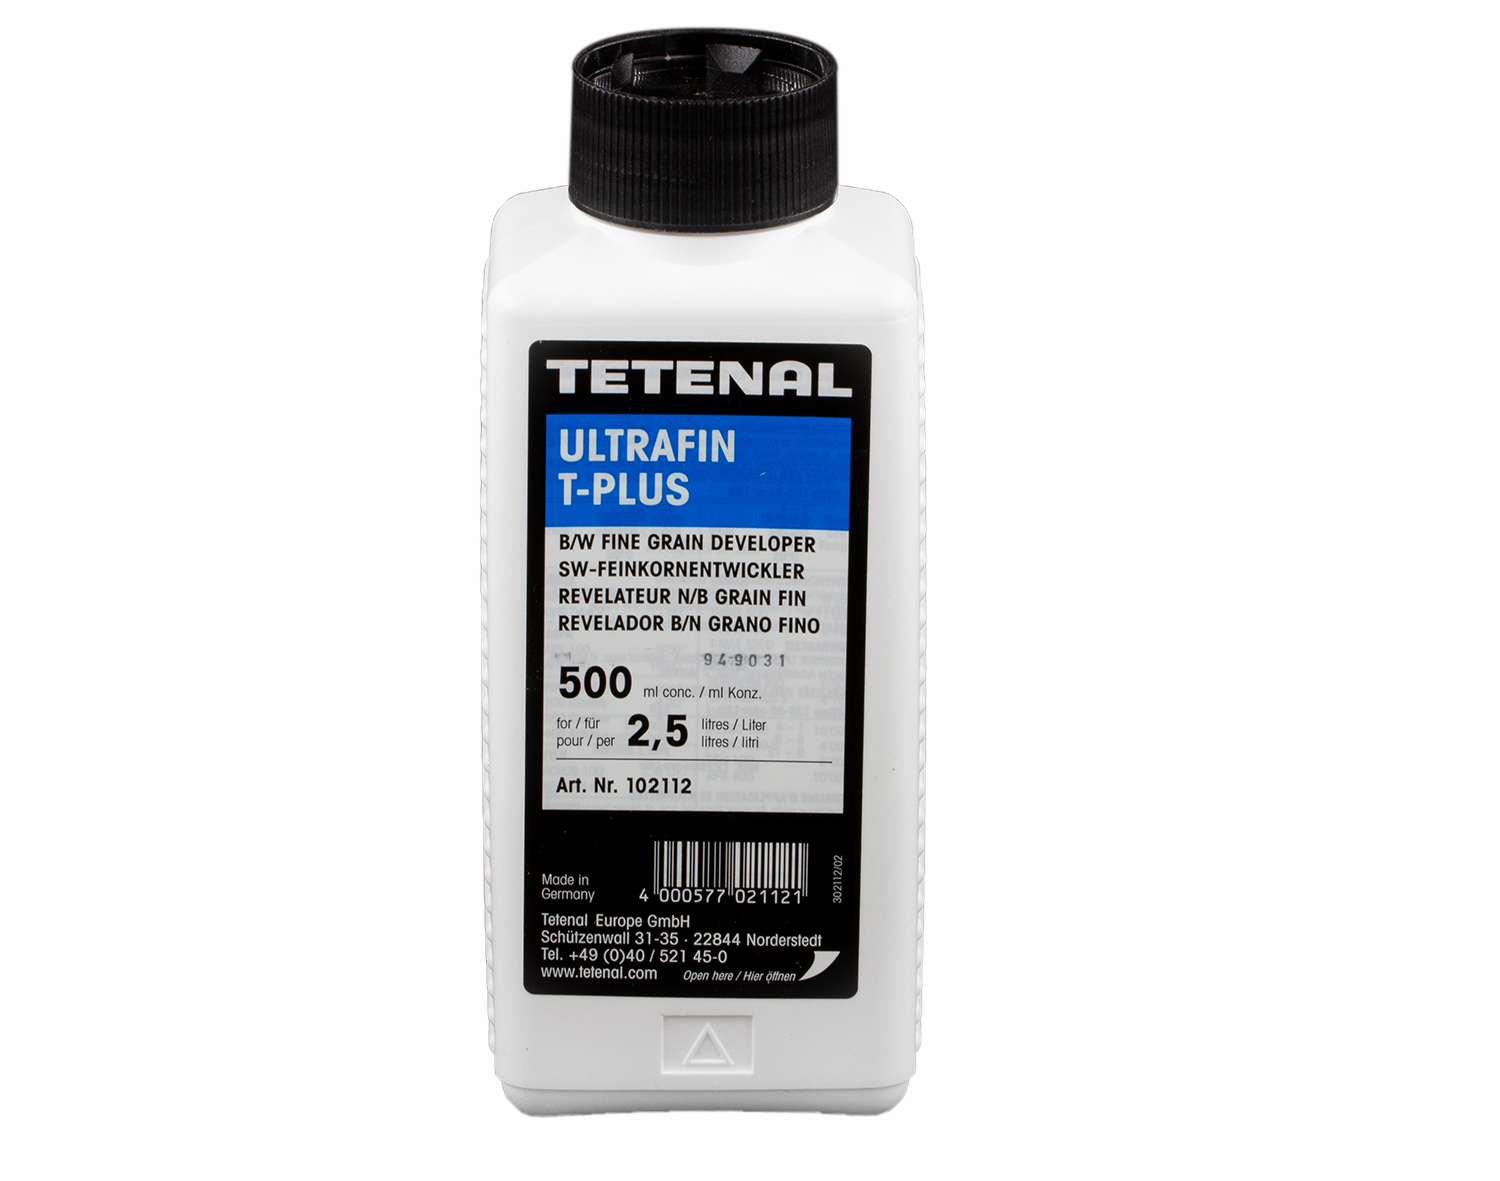 TETENAL Ultrafin T-Plus 0,5 l